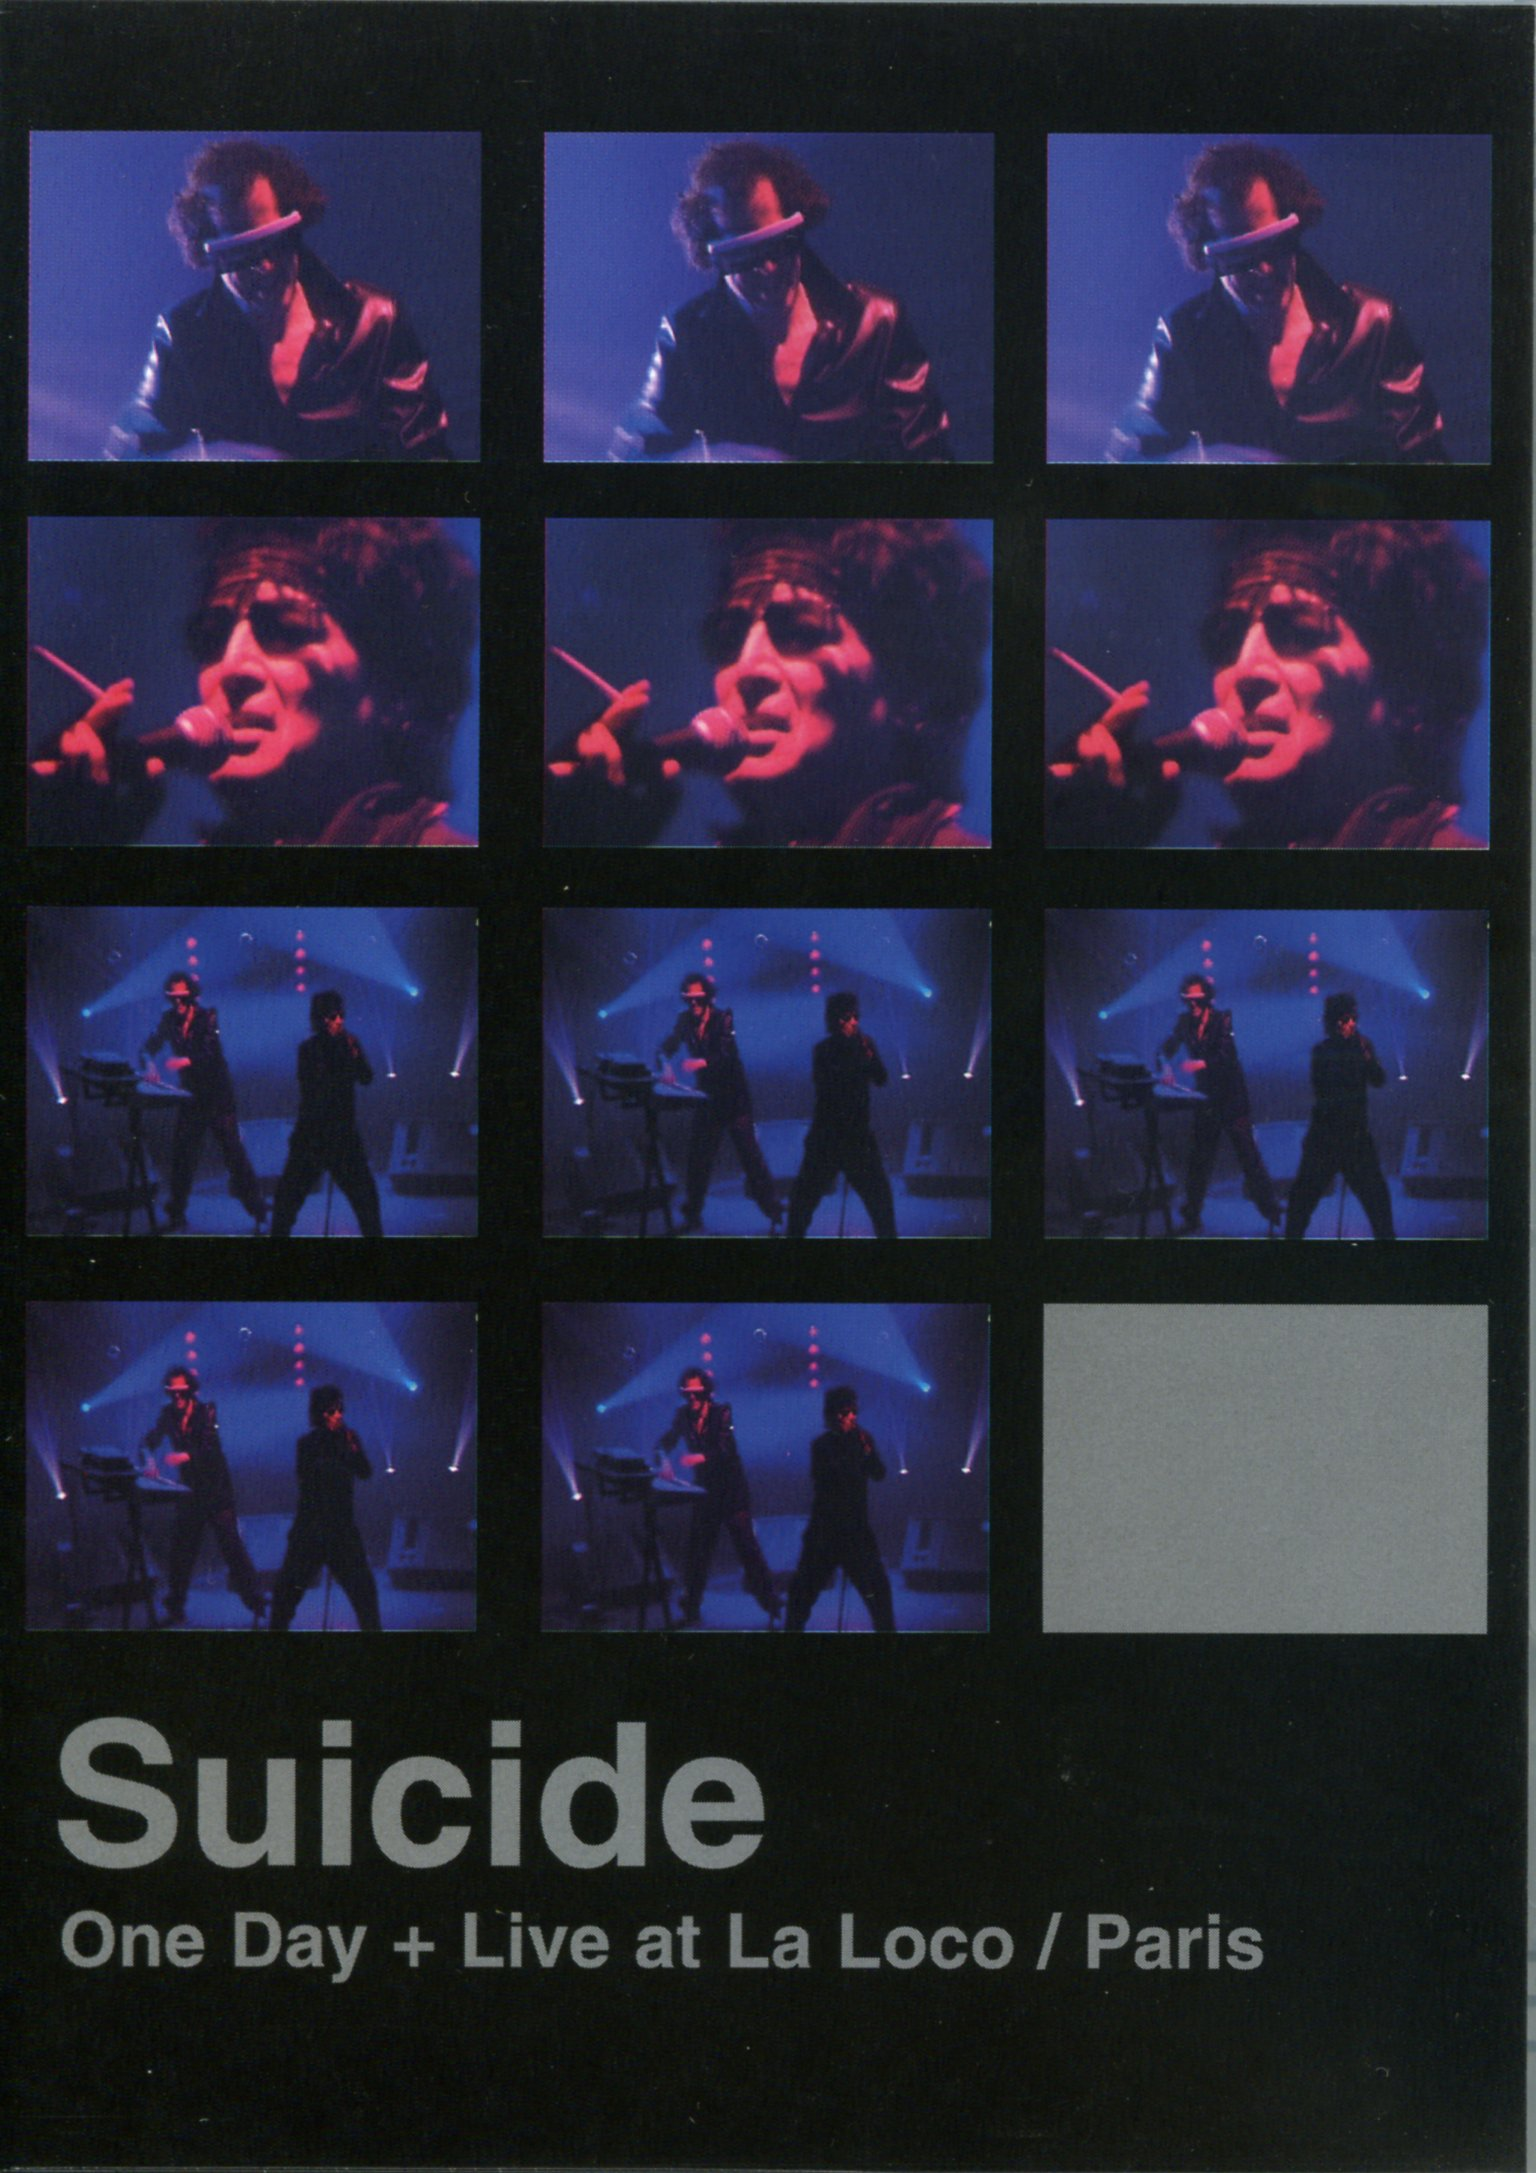 Suicide: One Day + Live at La Loco/Paris by Nocturne